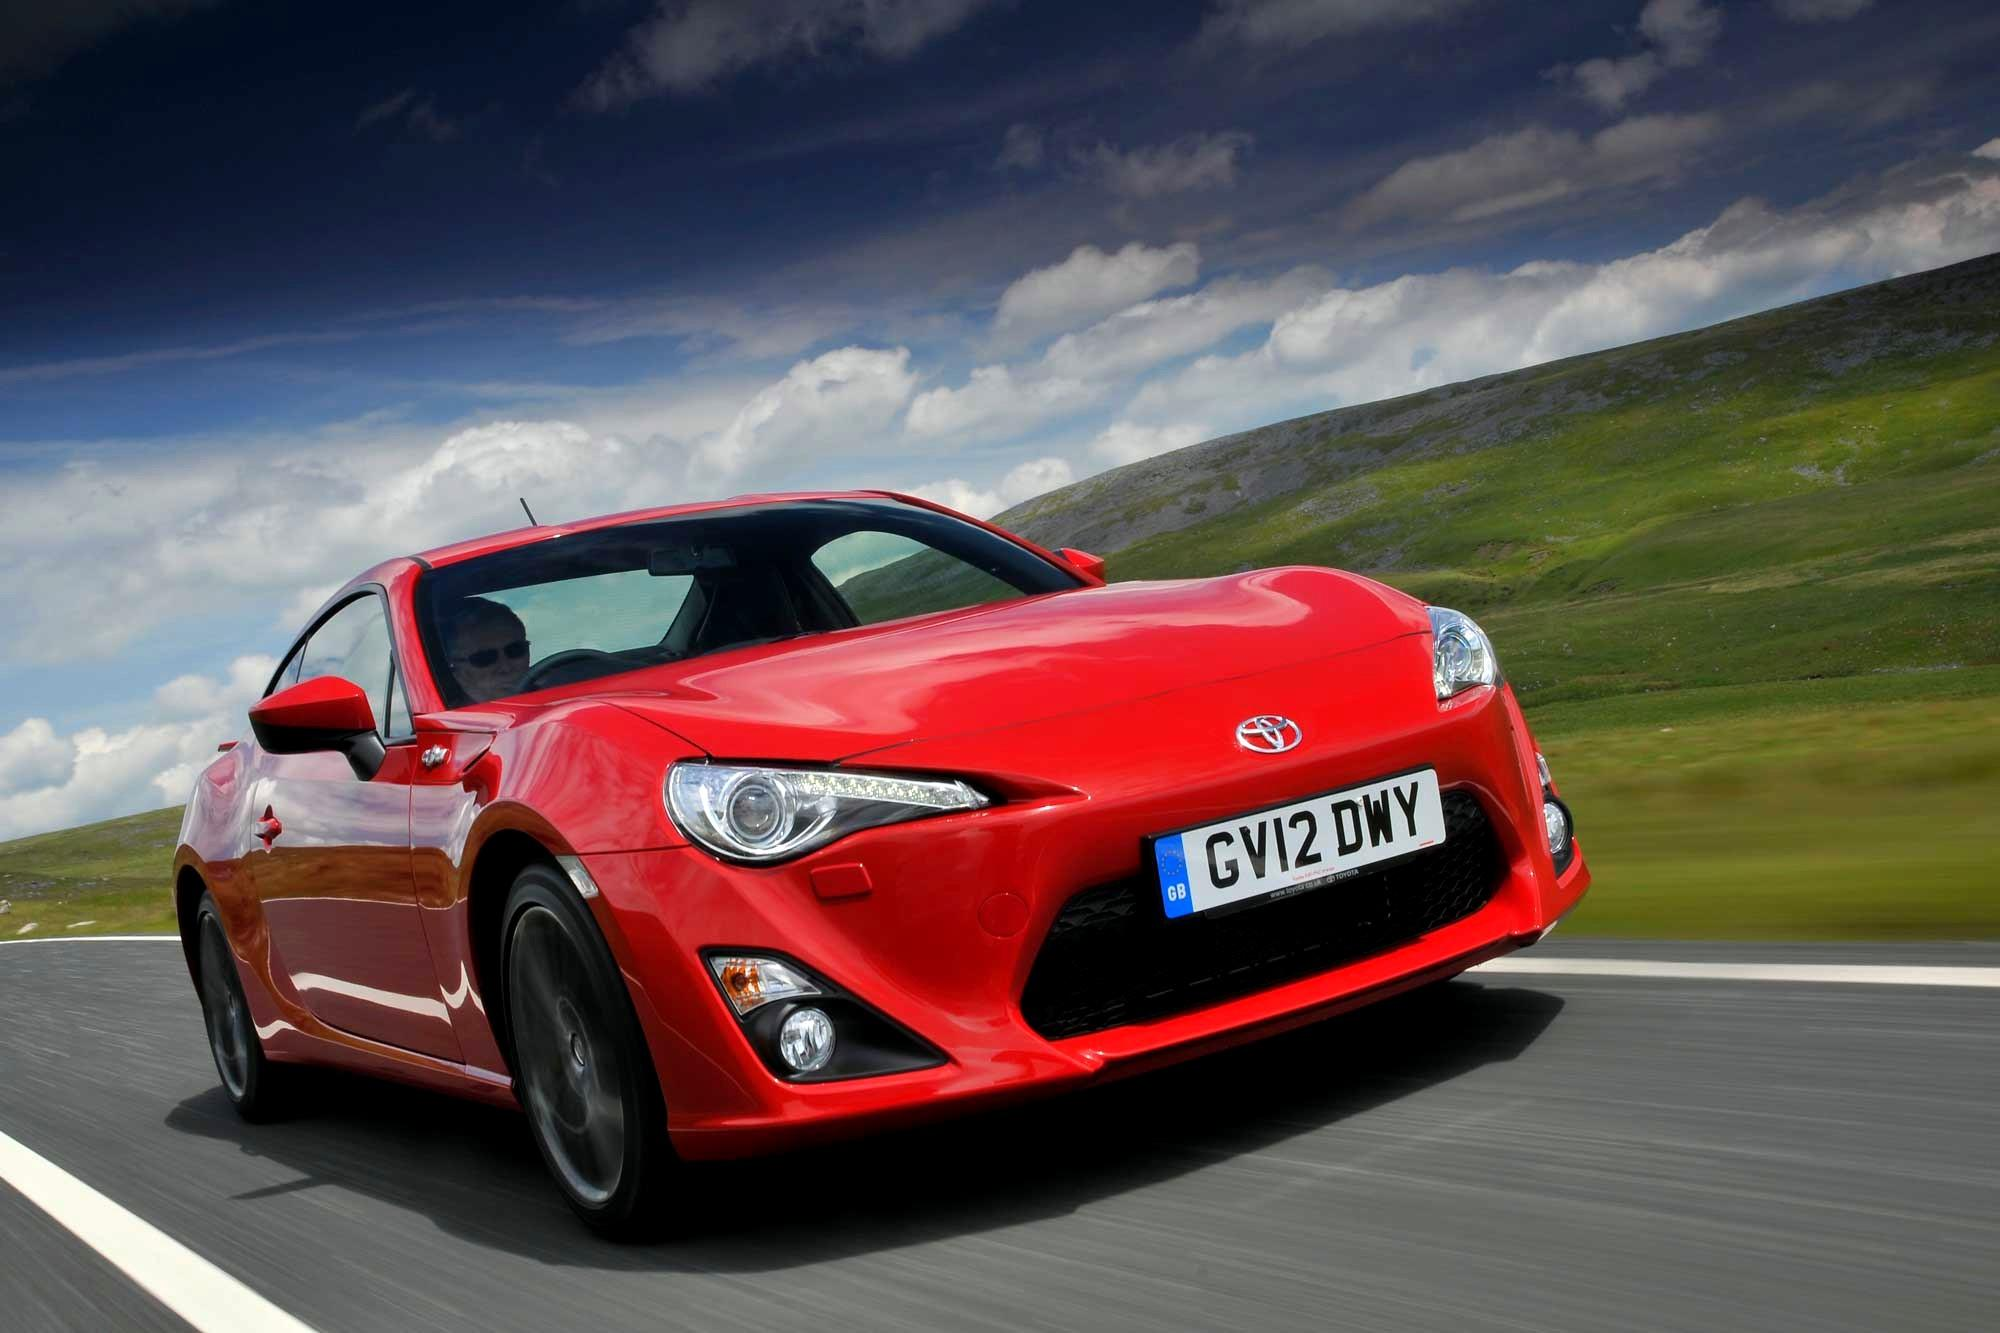 Toyota Gt86 Wallpapers HD Download 2000x1333